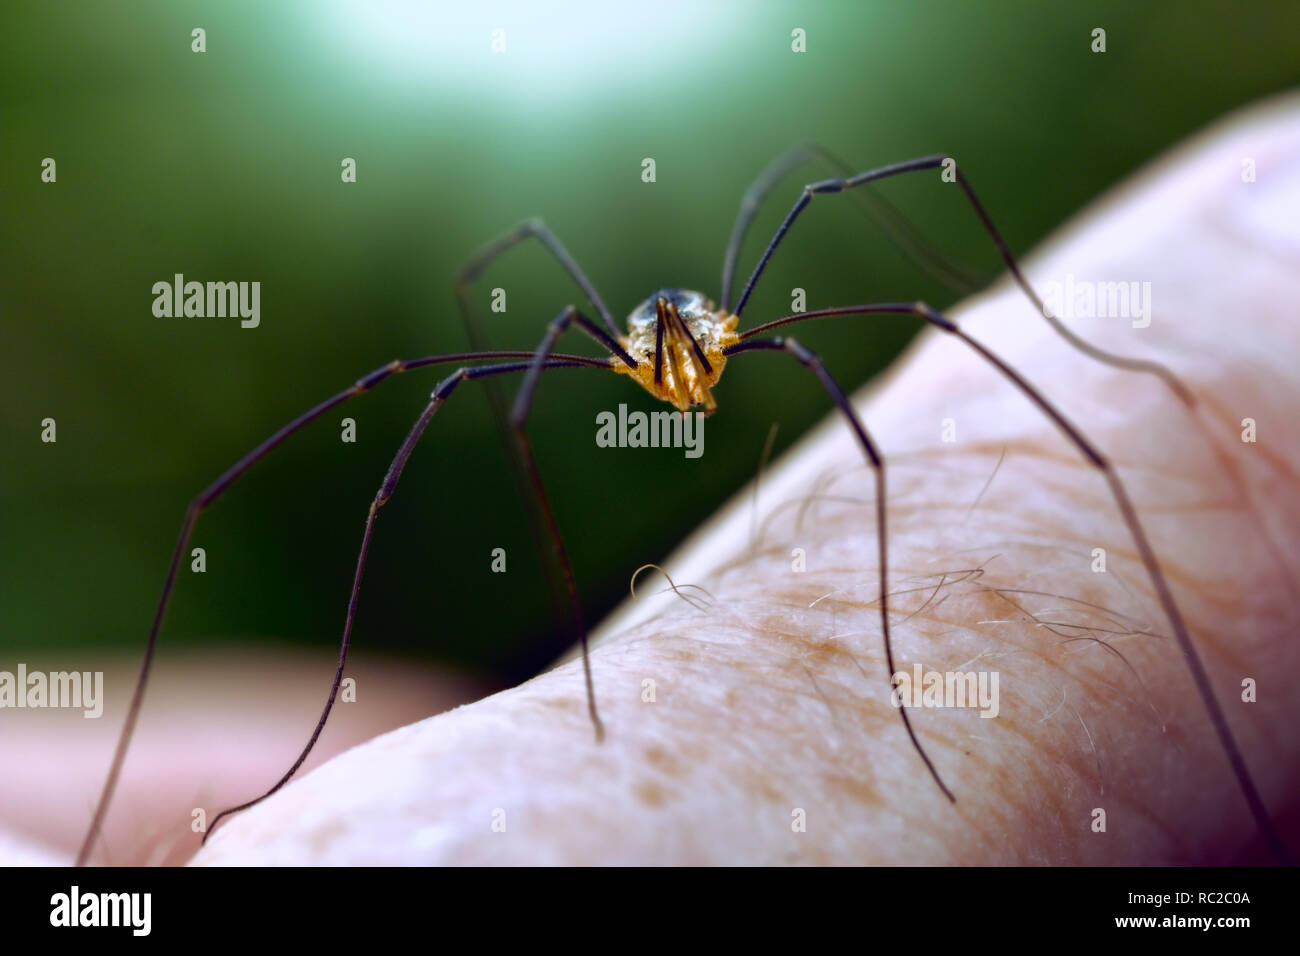 spider with long legs on human finger - Stock Image